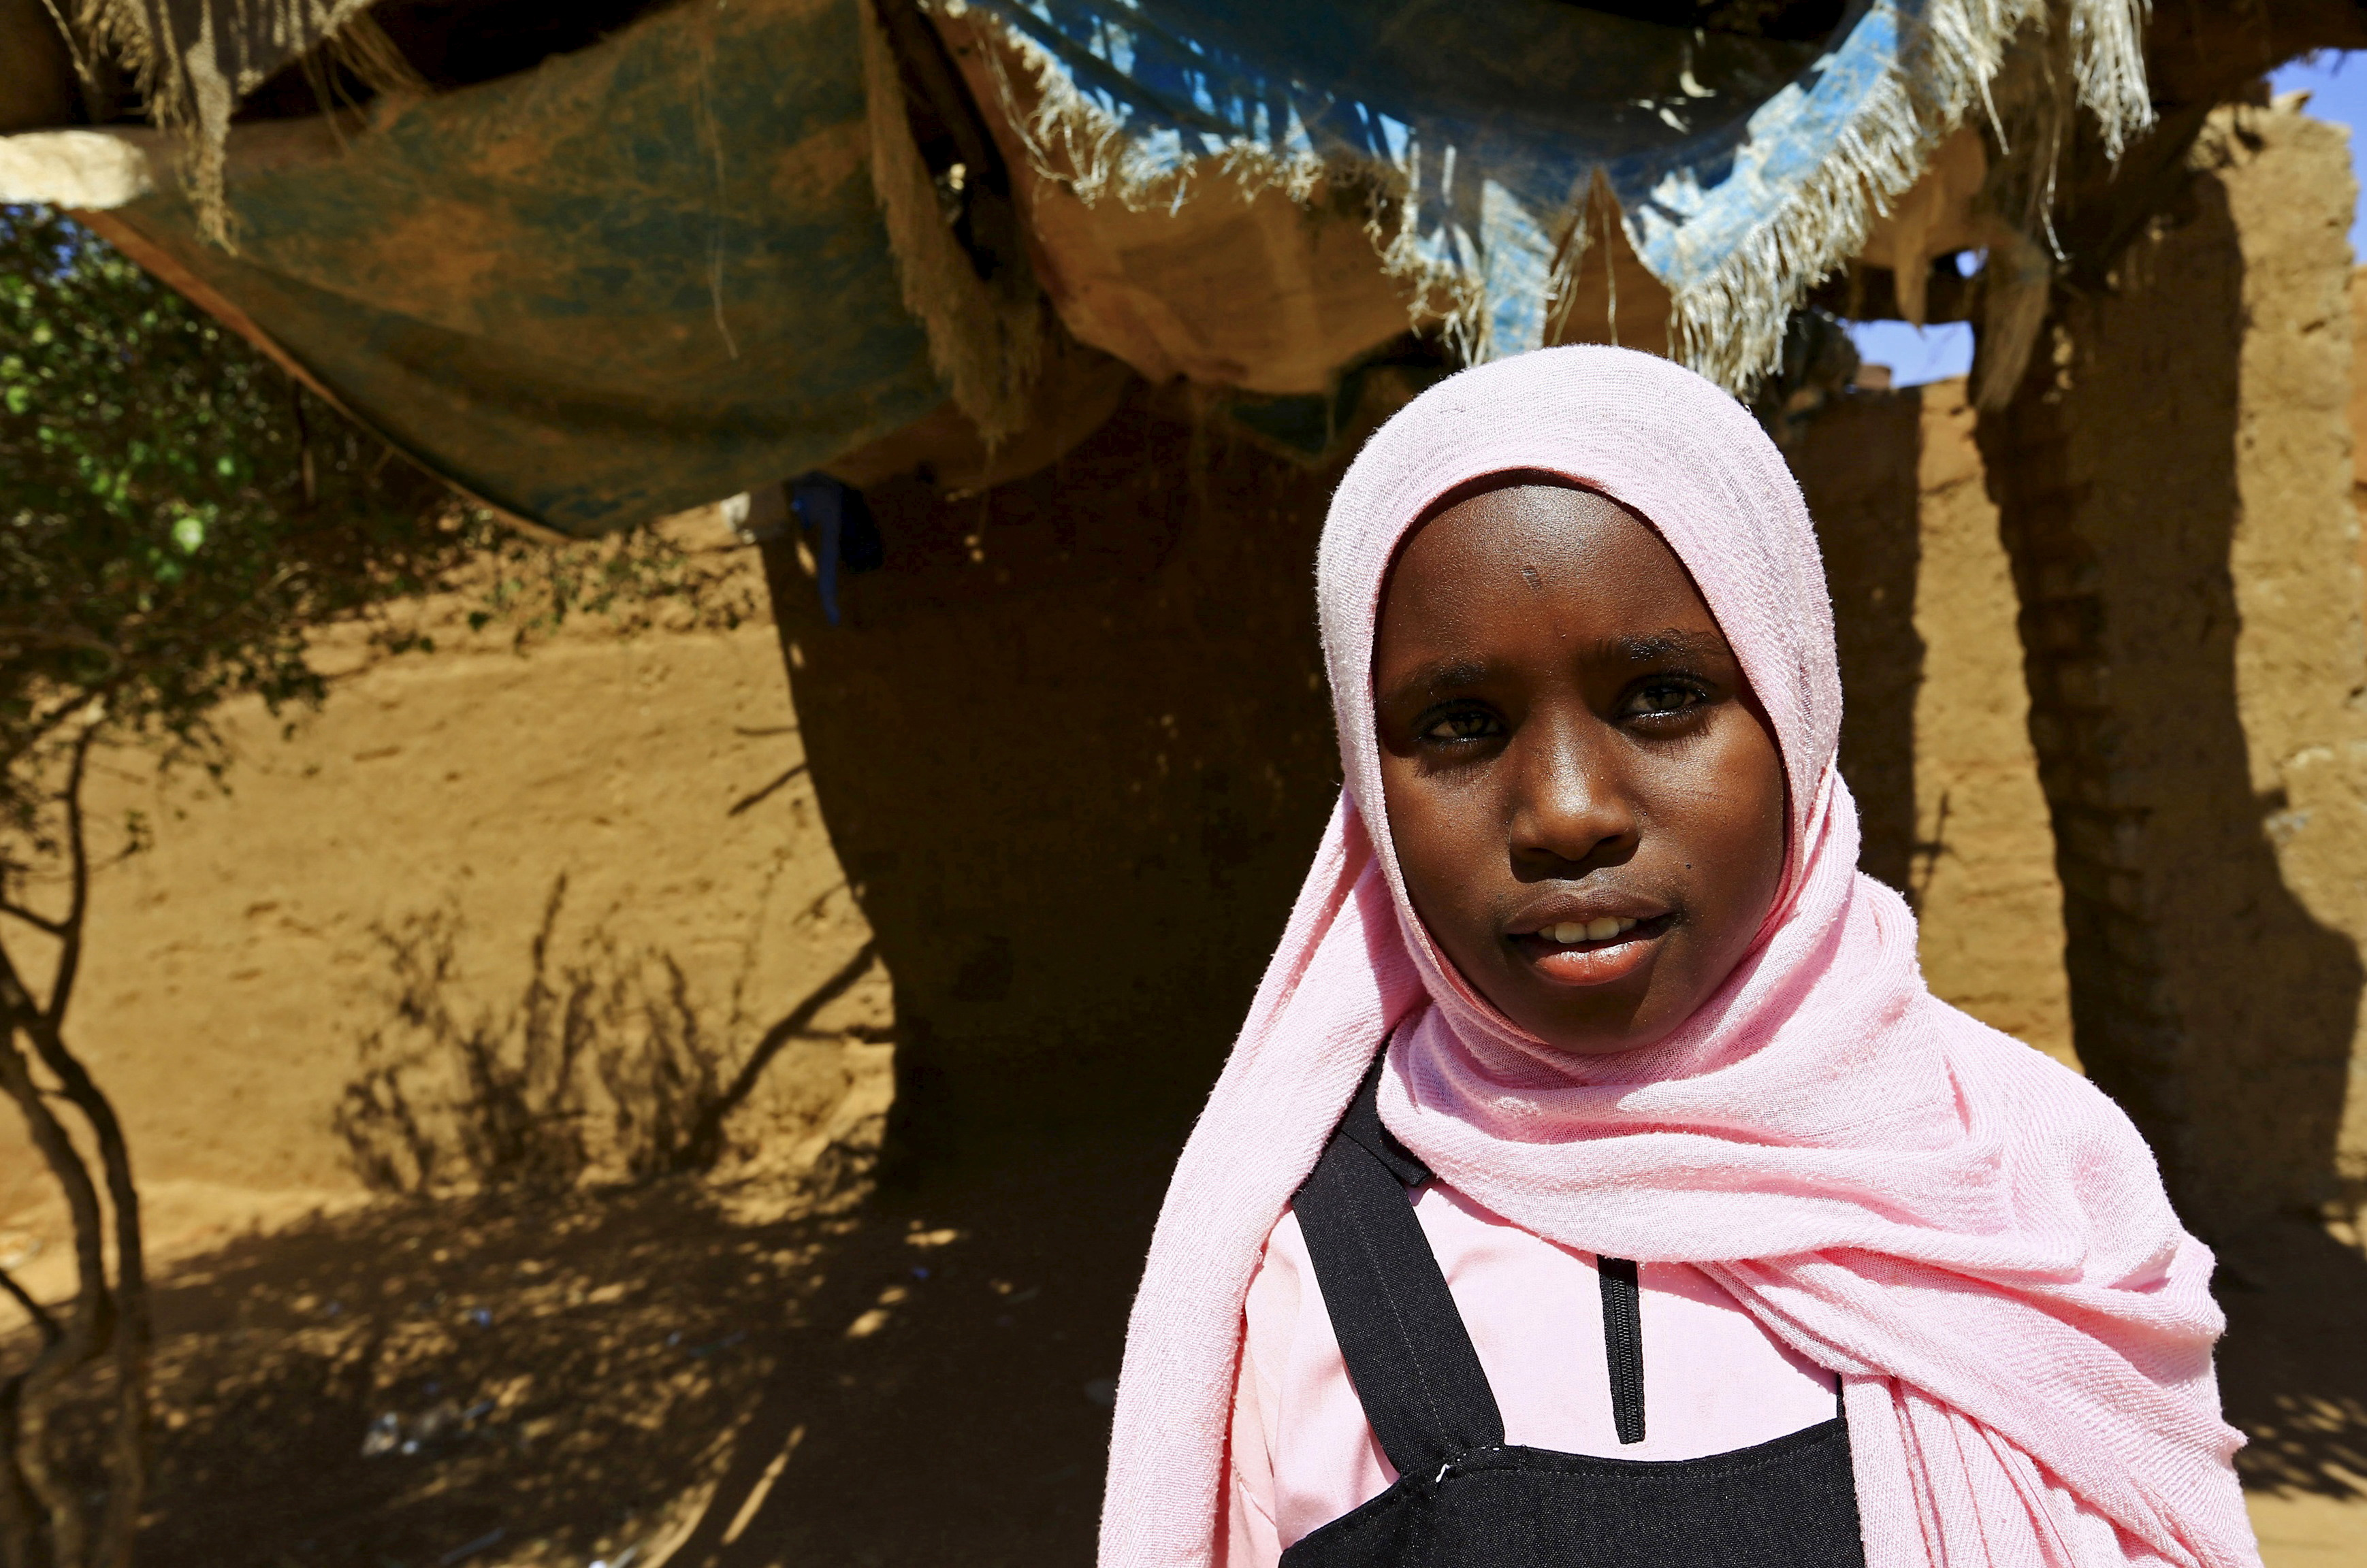 Manasik Yousif Abdo-Rahman, a 4th grader at the Alsalam camps for the internally displaced persons poses for a photograph in El-Fasher in North Darfur, Sudan, Nov.17, 2015.